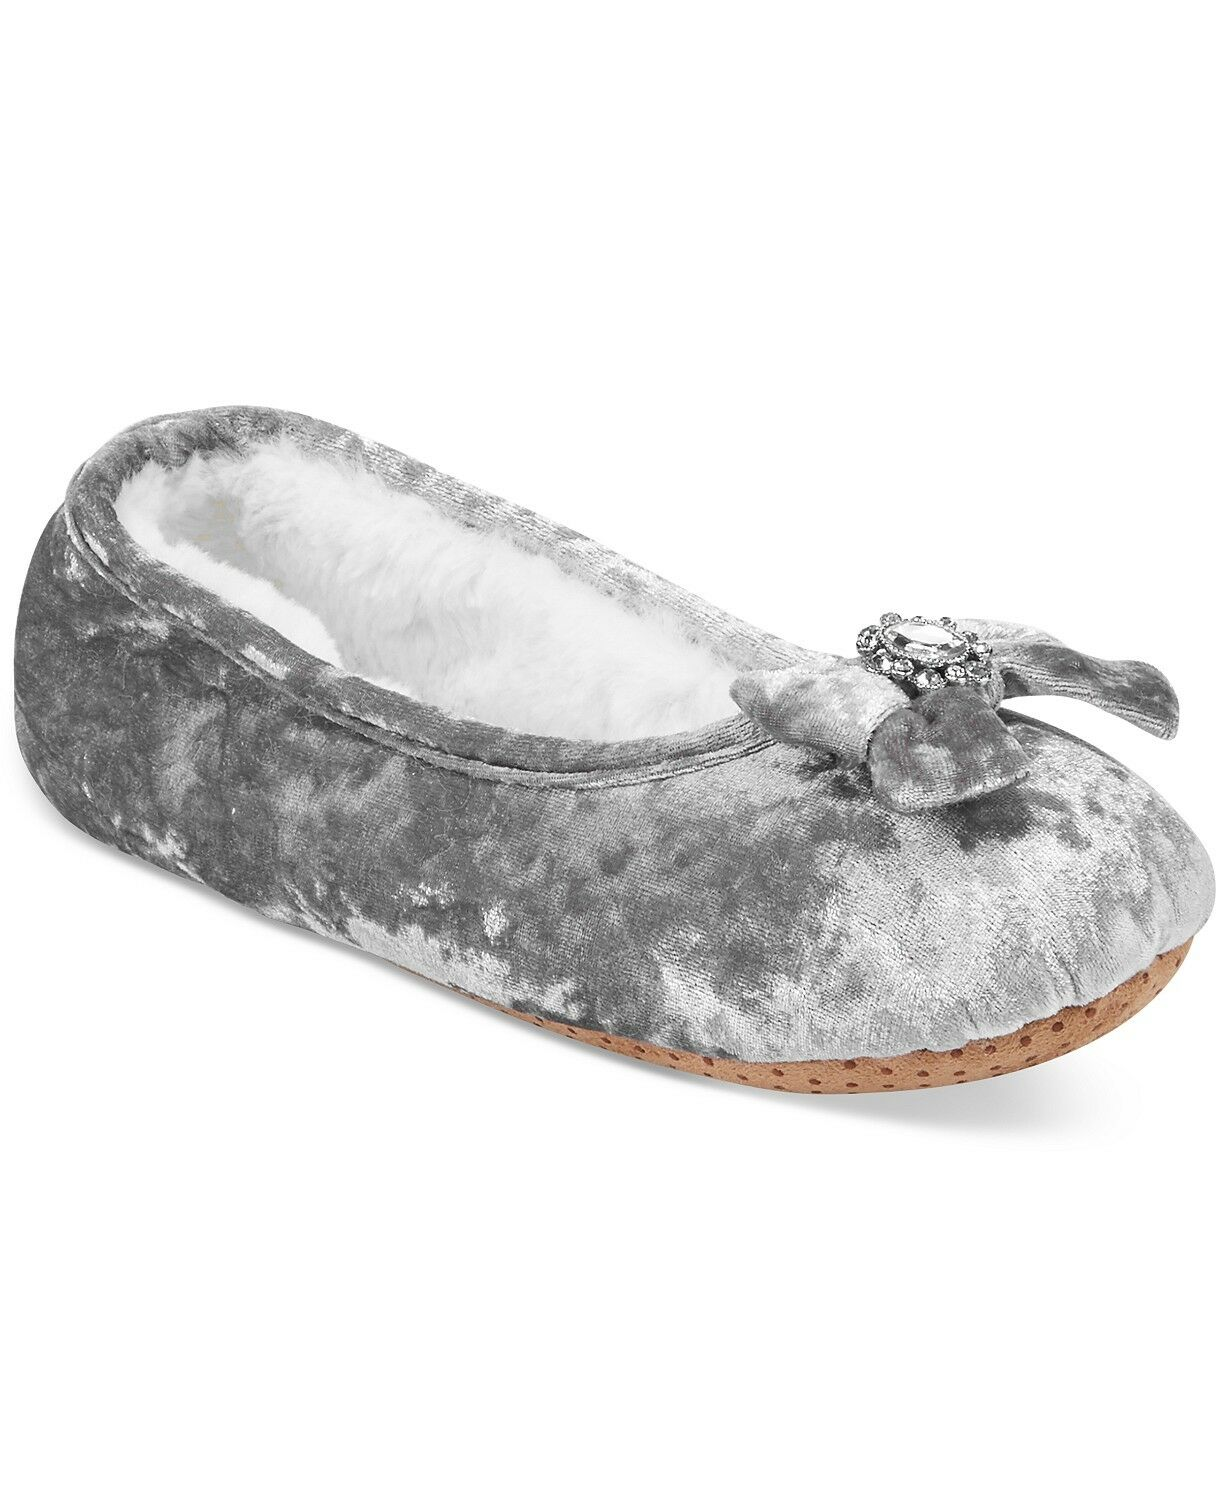 NWT INC International Concepts Embellished Ballerina Slippers in Silver M 7/8